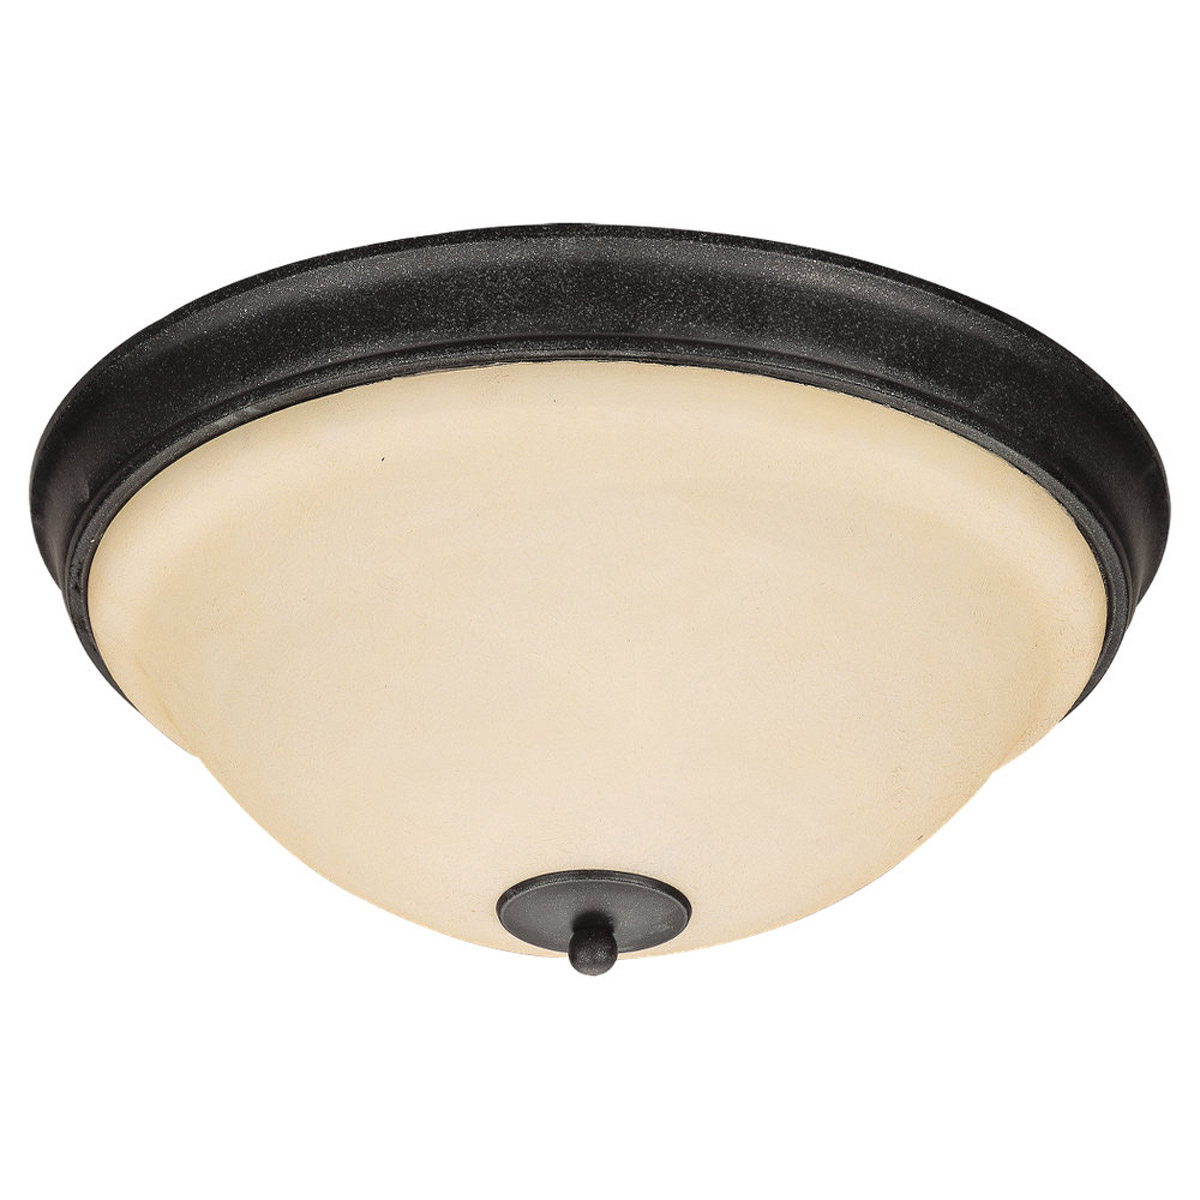 Sea Gull Lighting Serenity 3 Light Flush Mount in Weathered Iron 75190-07